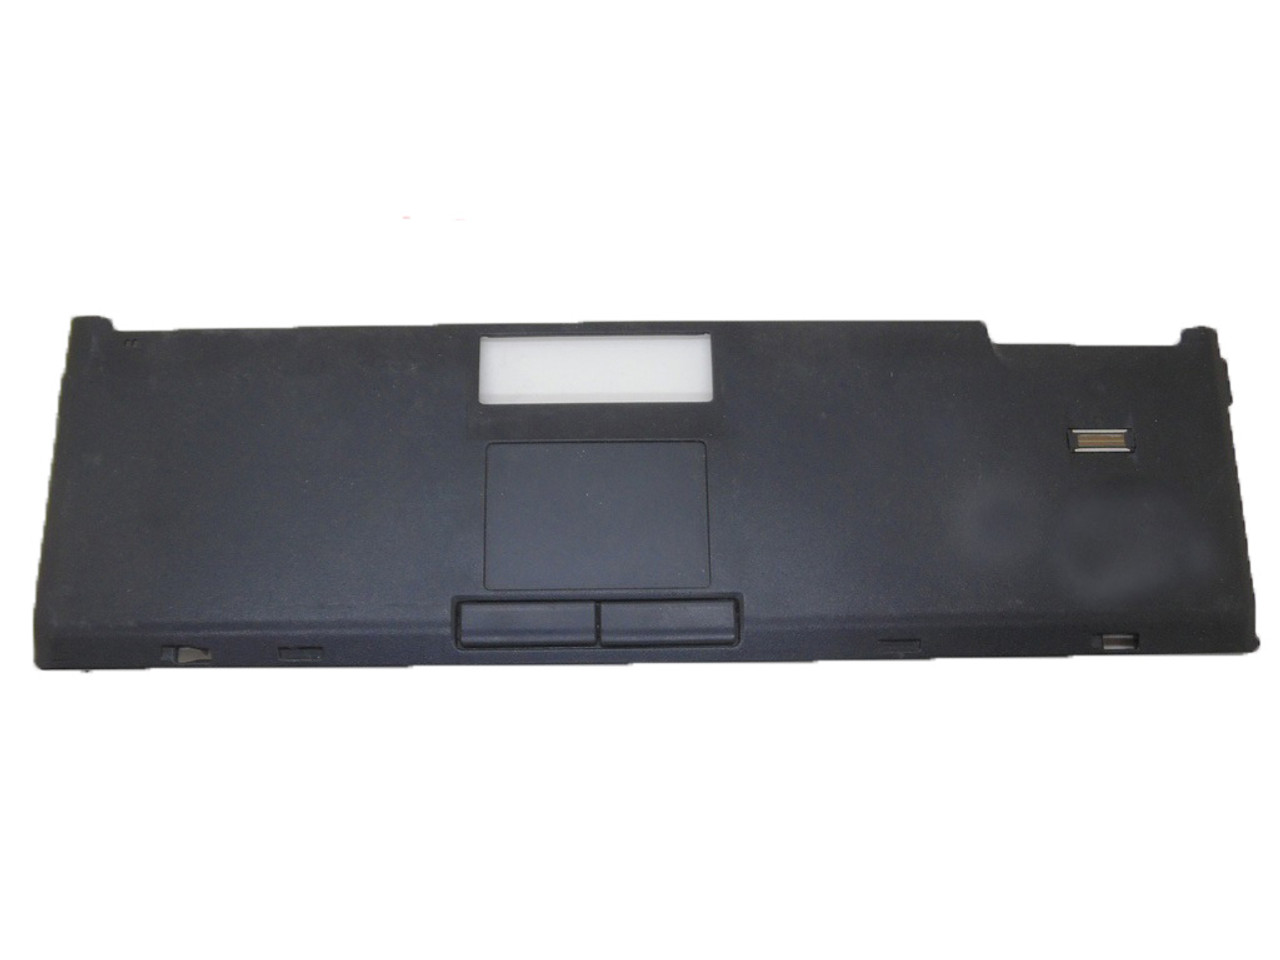 Laptop PalmRest for Lenovo ThinkPad T440P 04X5394 Upper Case Without Touchpad,with Fingerprint Hole